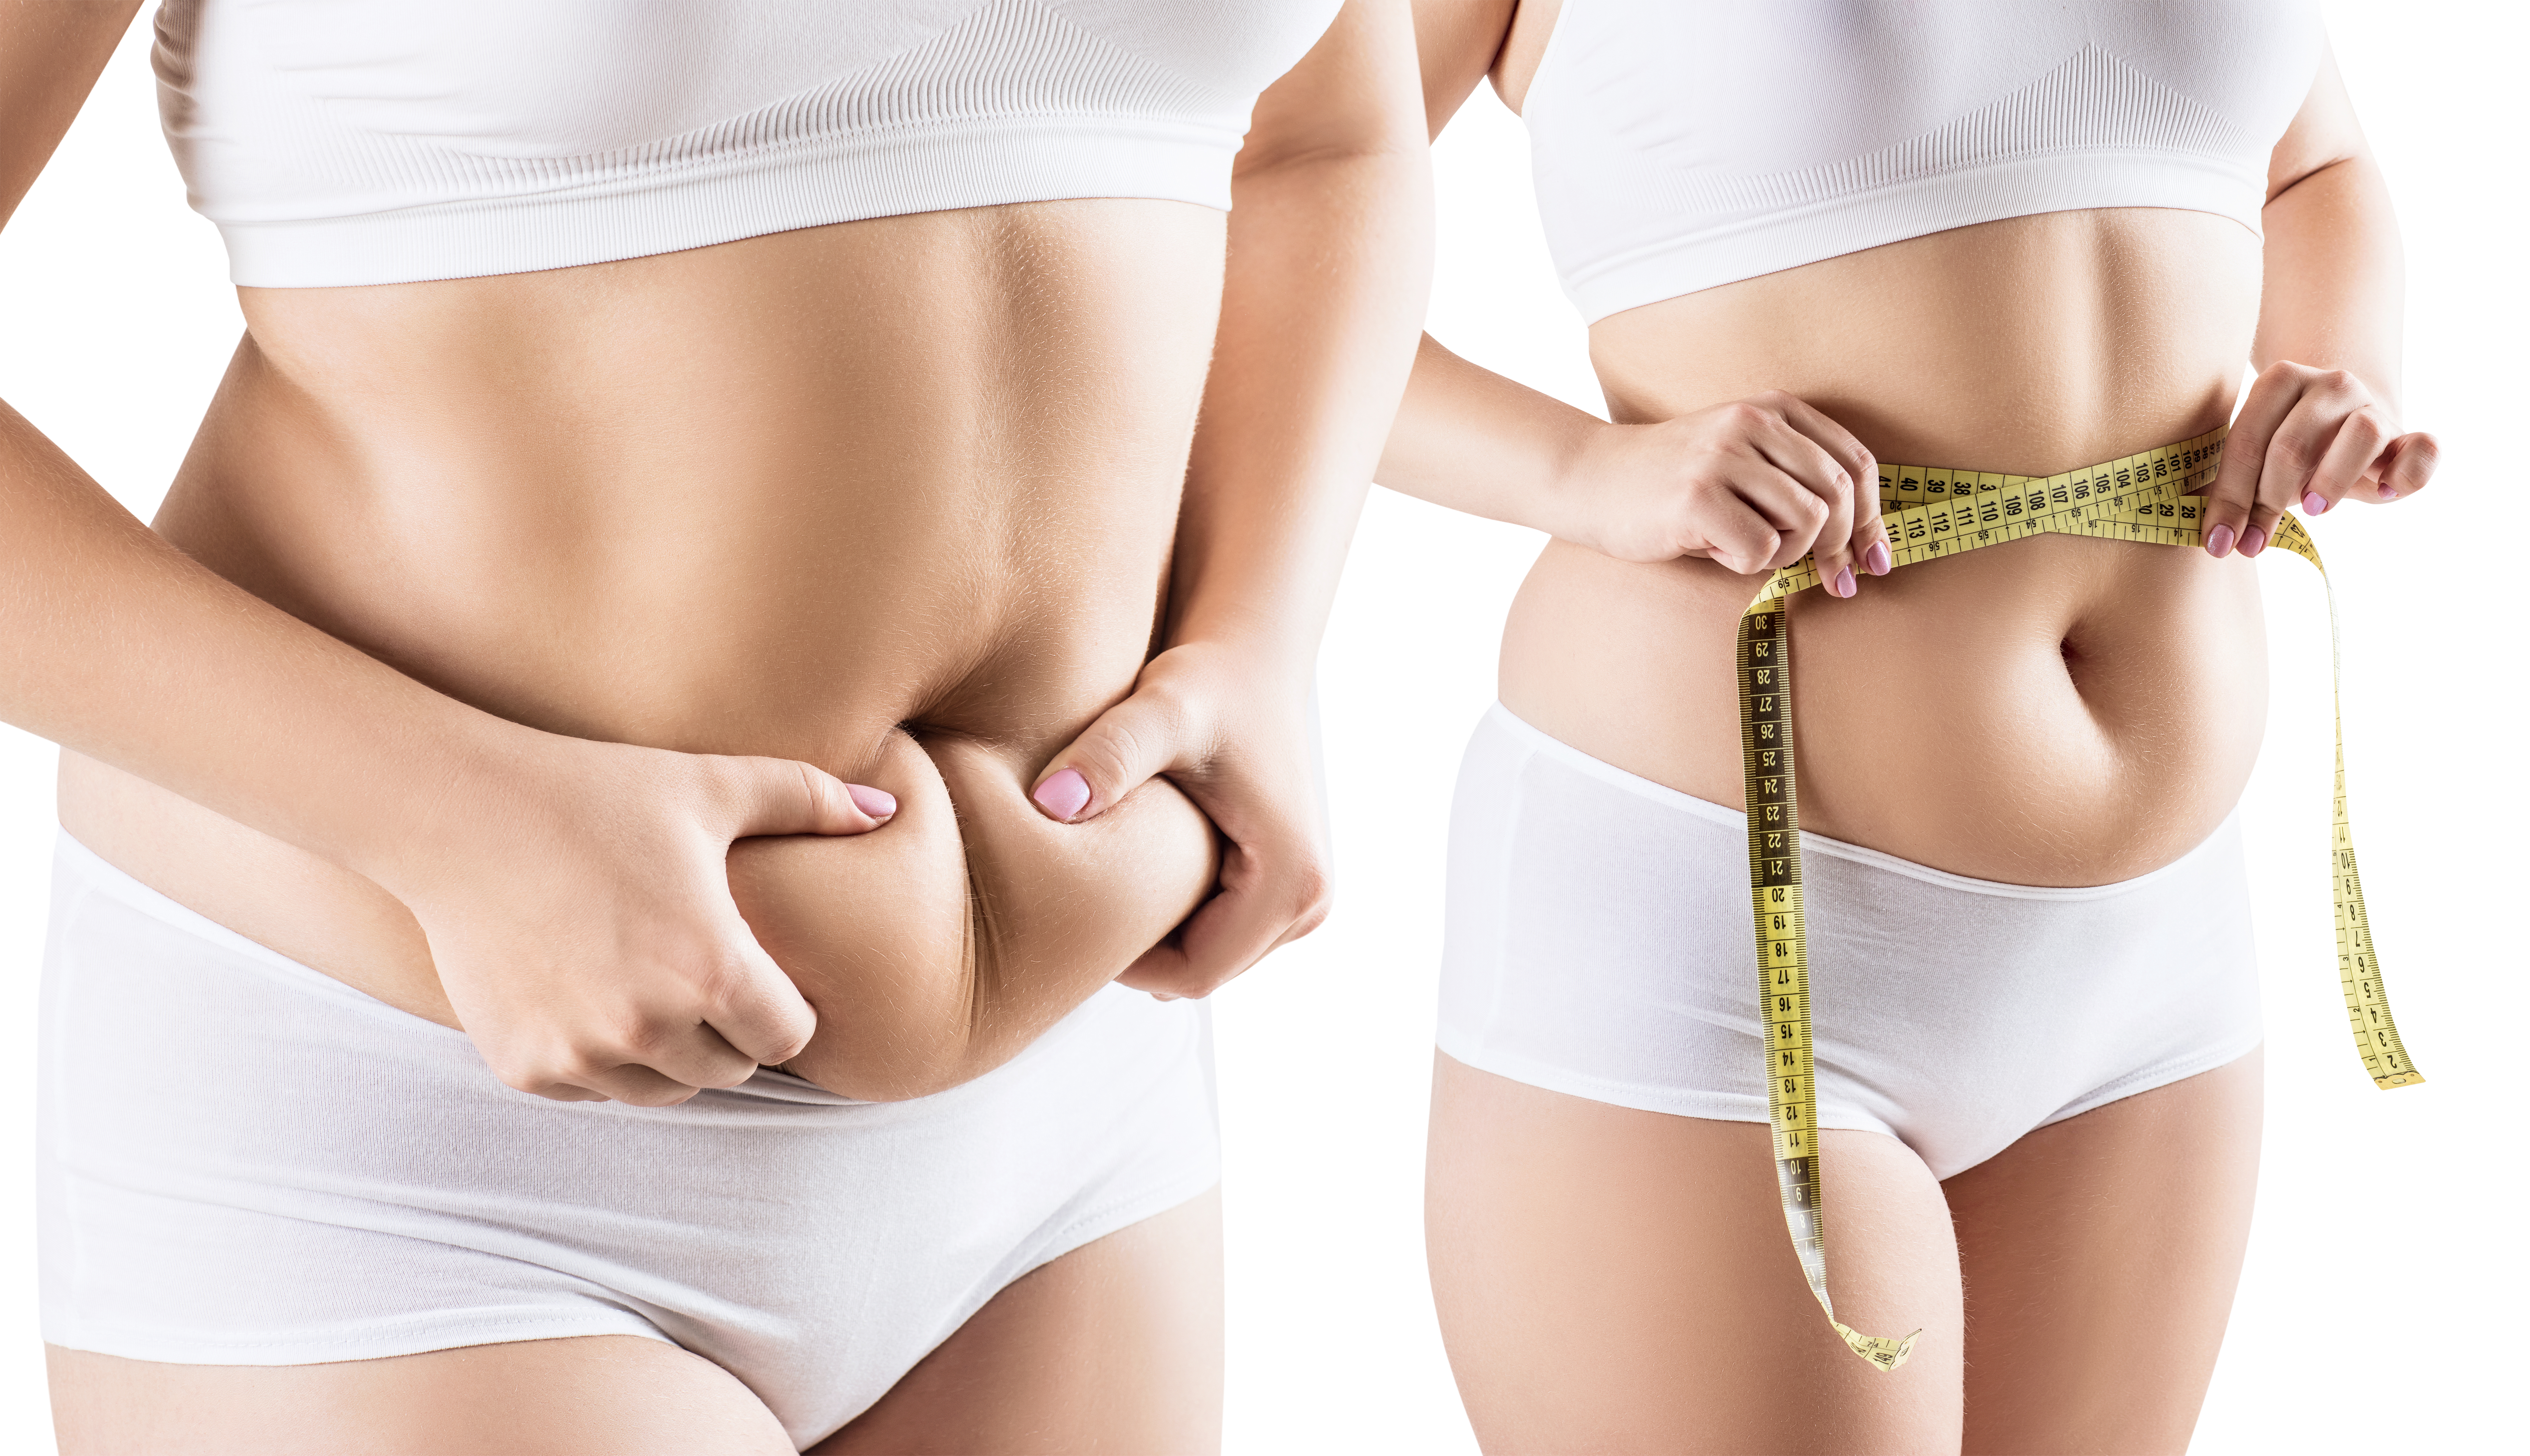 The easiest three procedures to get rid of tummy fat without pain